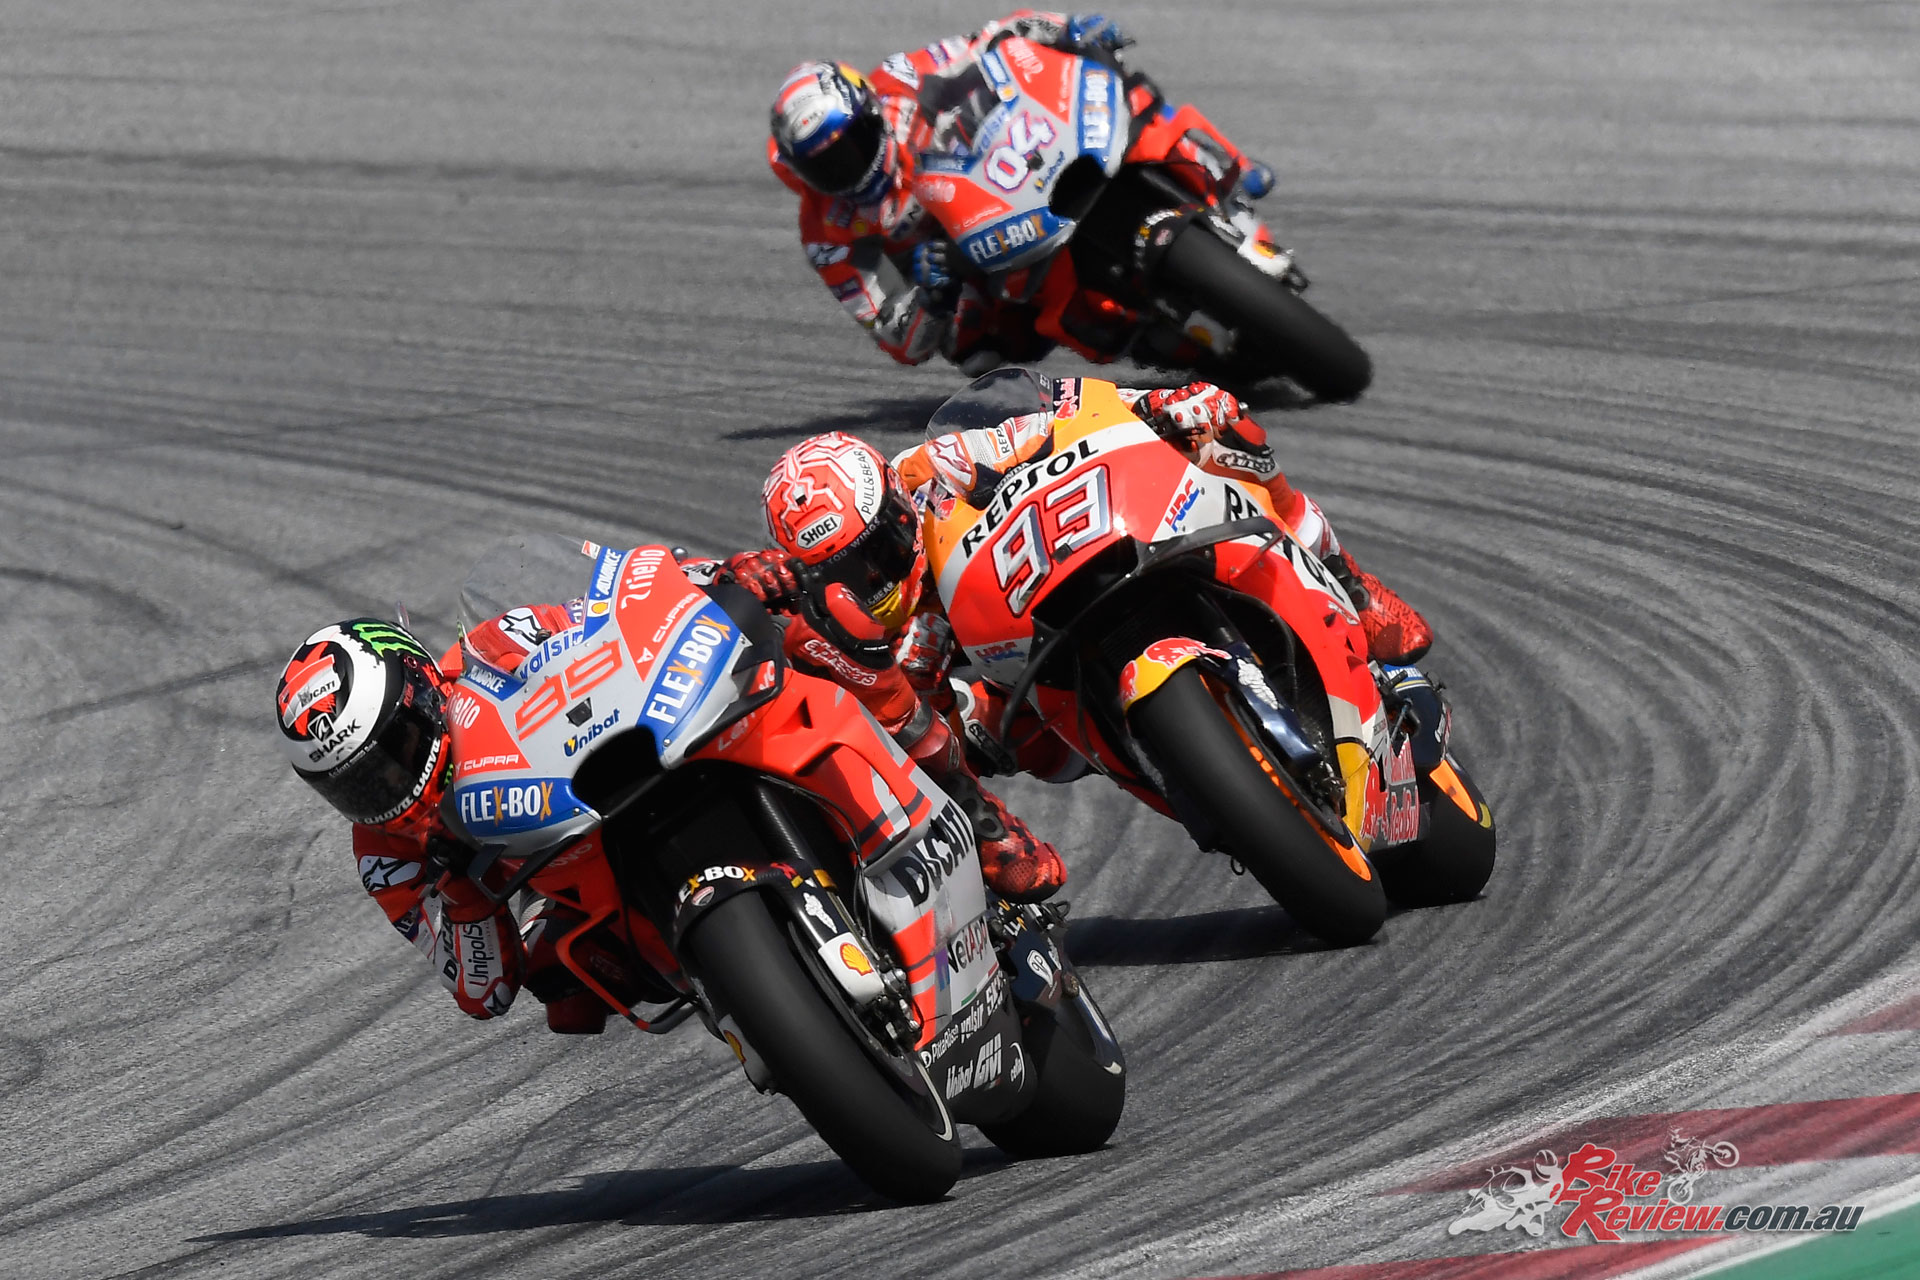 Lorenzo held off Marquez for the win